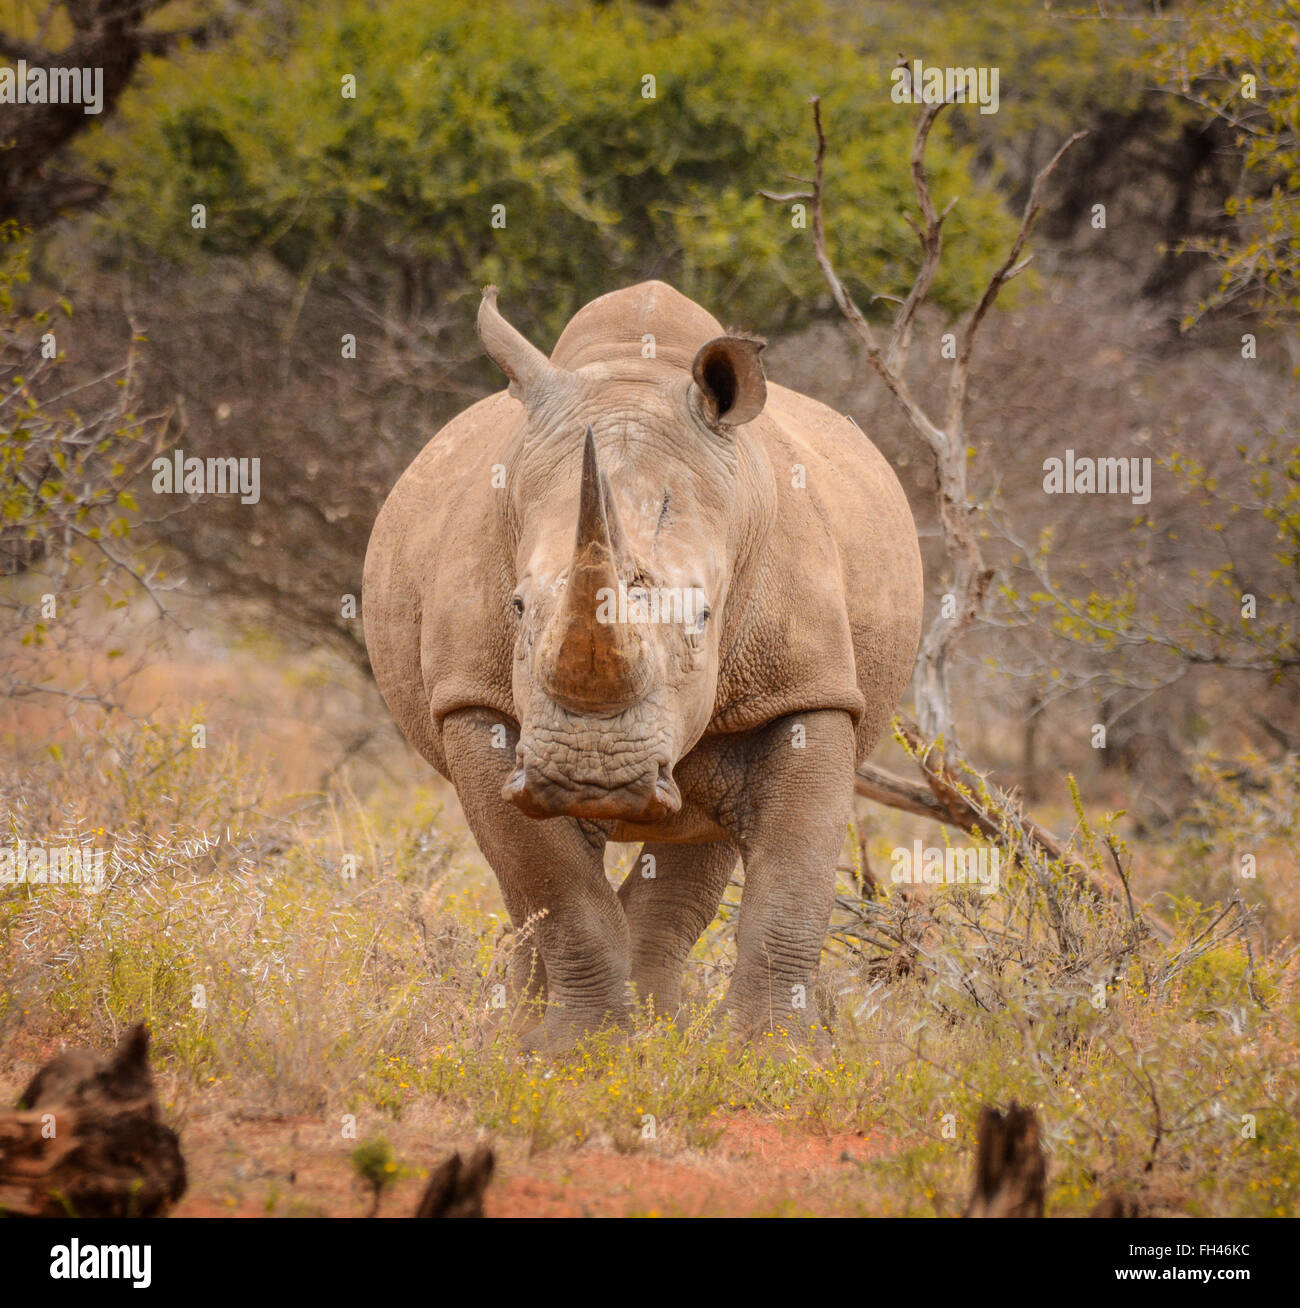 White Rninoceros in the Northern Cape, South Africa - Stock Image